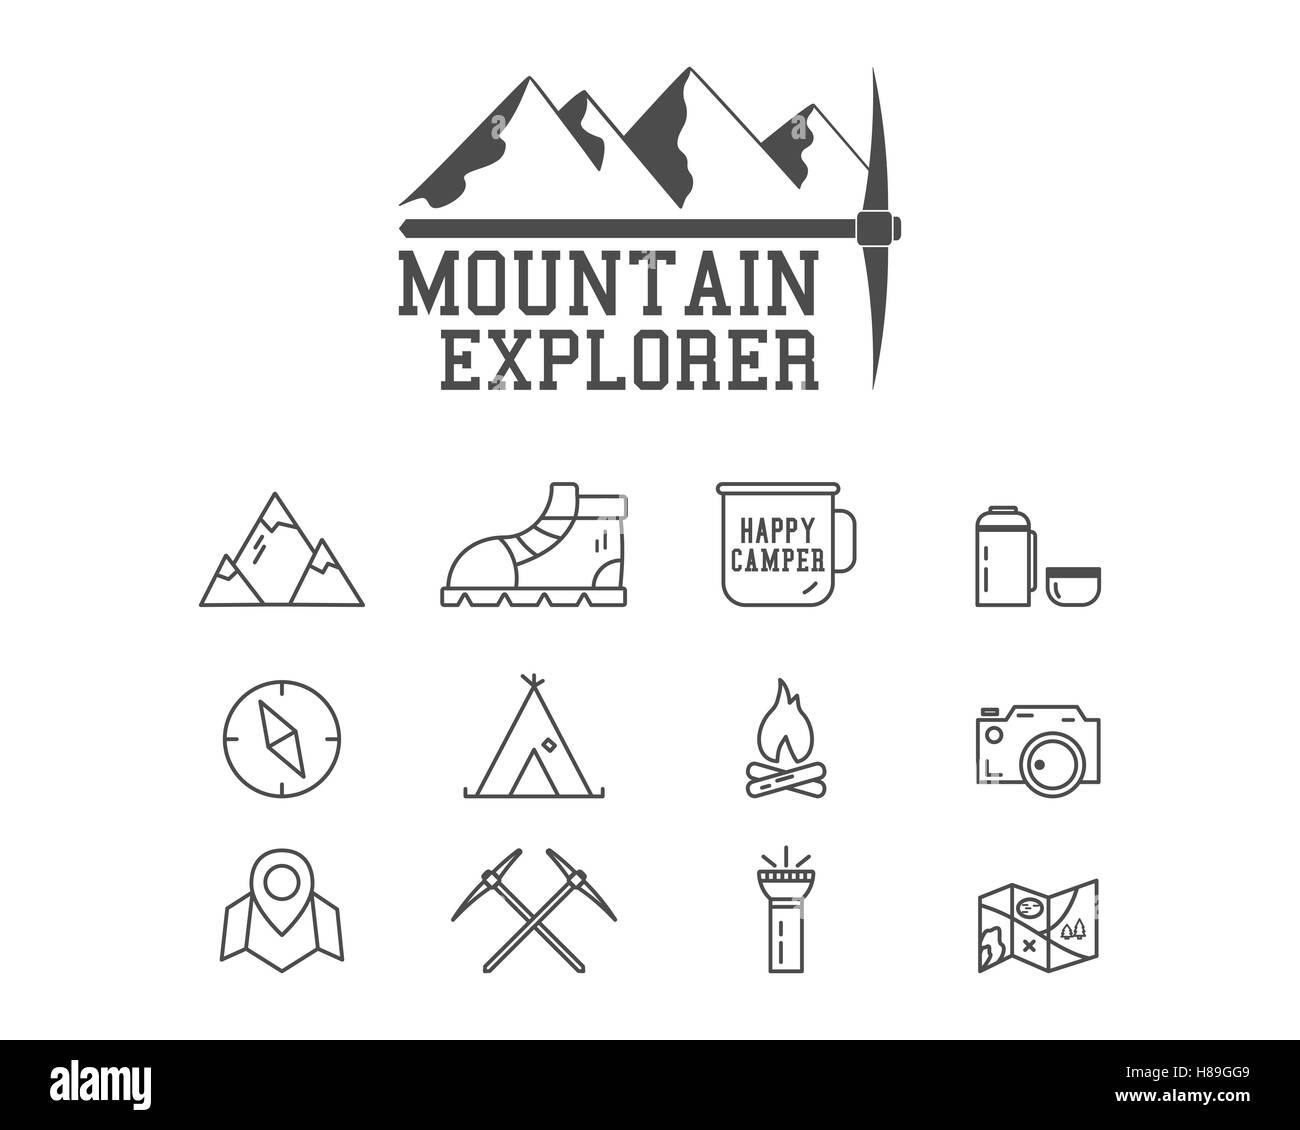 camping mountain explorer camp badge logo template travel hiking